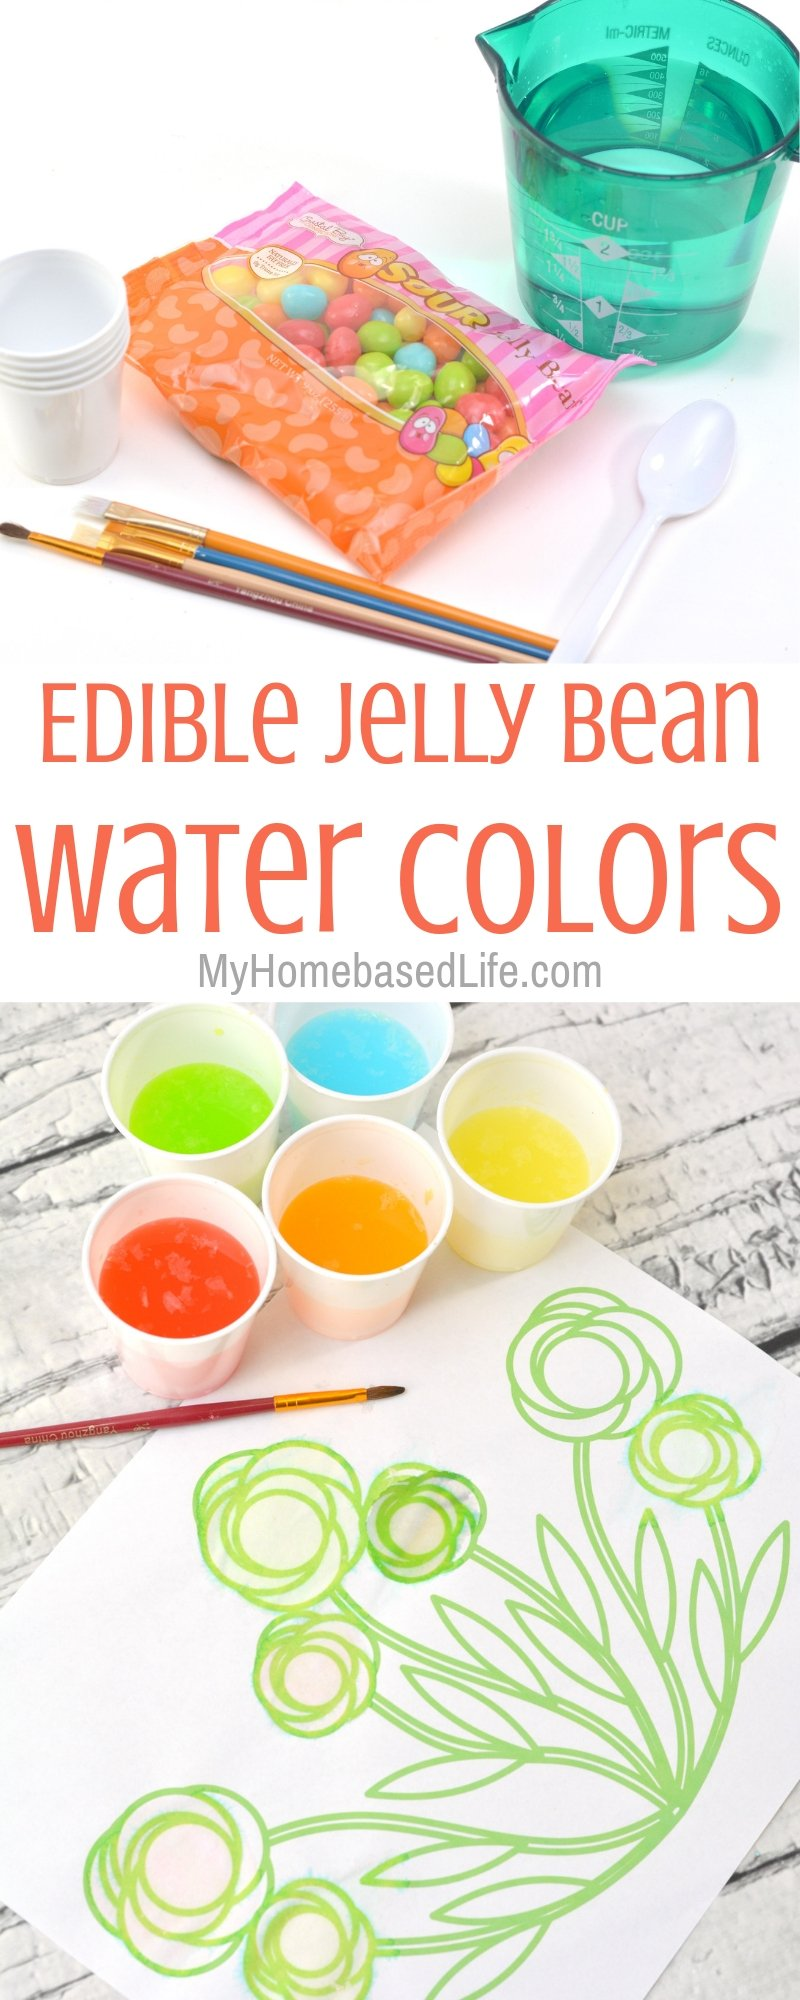 The next time you're looking for an activity to do with the kids or even at a birthday party, check out this Edible Jelly Bean Watercolors. #kidsactivity #myhomebasedlife #springactivities #painting #watercolor   Easy Kids Activity   Watercoloring for Preschoolers   Activities for Kindergarteners   Spring Activities for kids